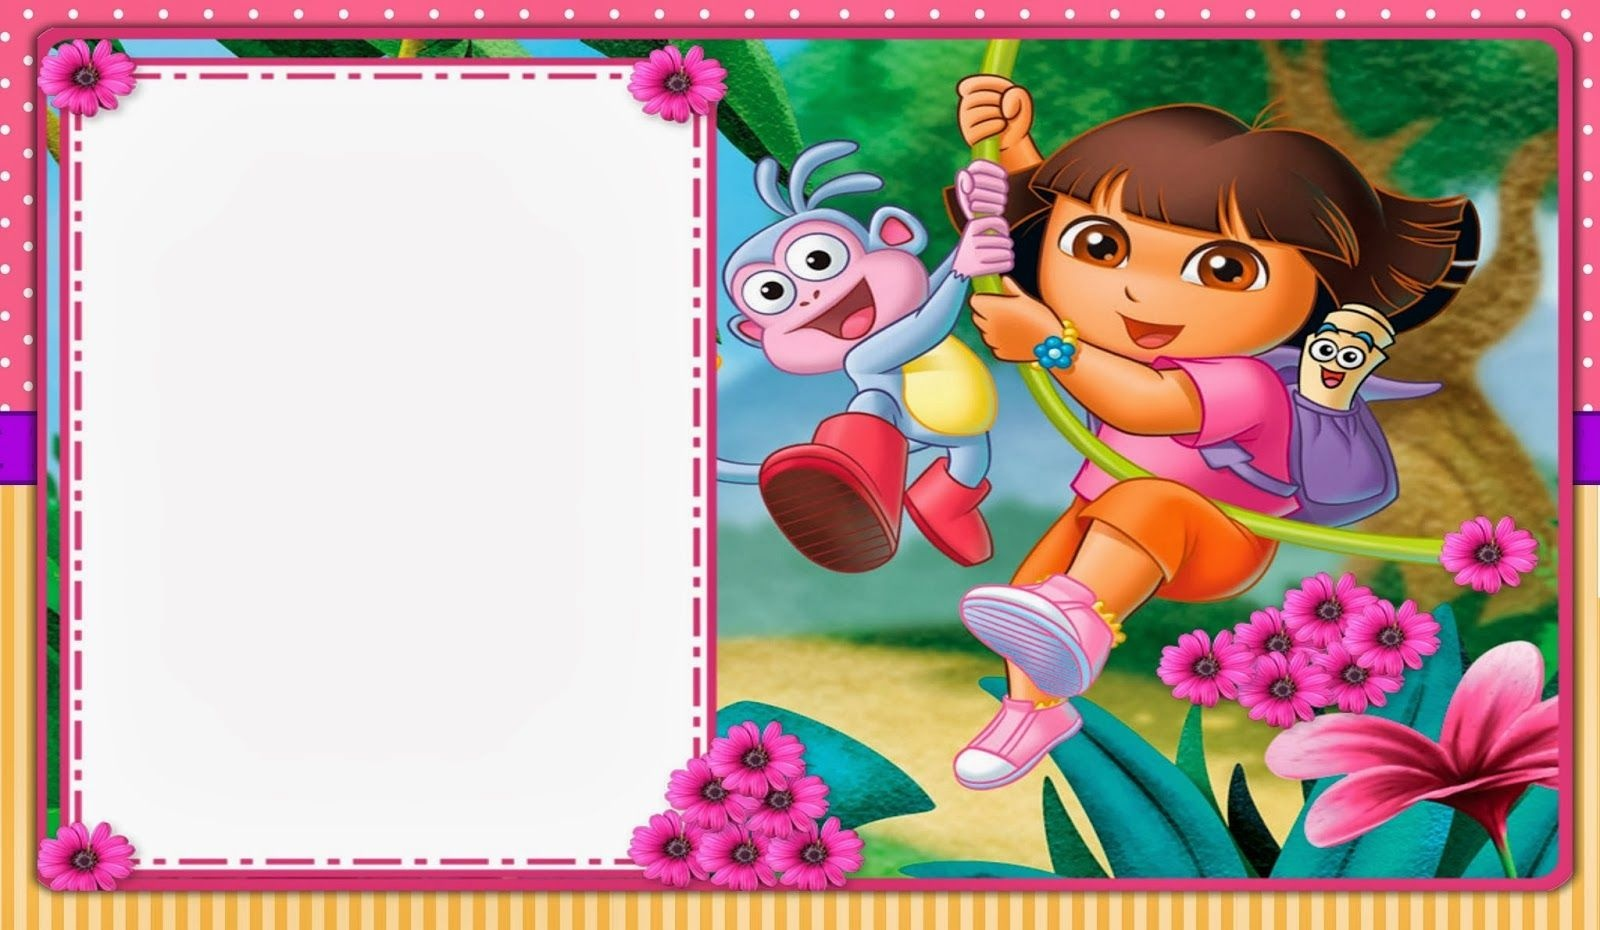 Dora The Explorer: Free Printable Invitations And Party Printables - Dora The Explorer Free Printable Invitations